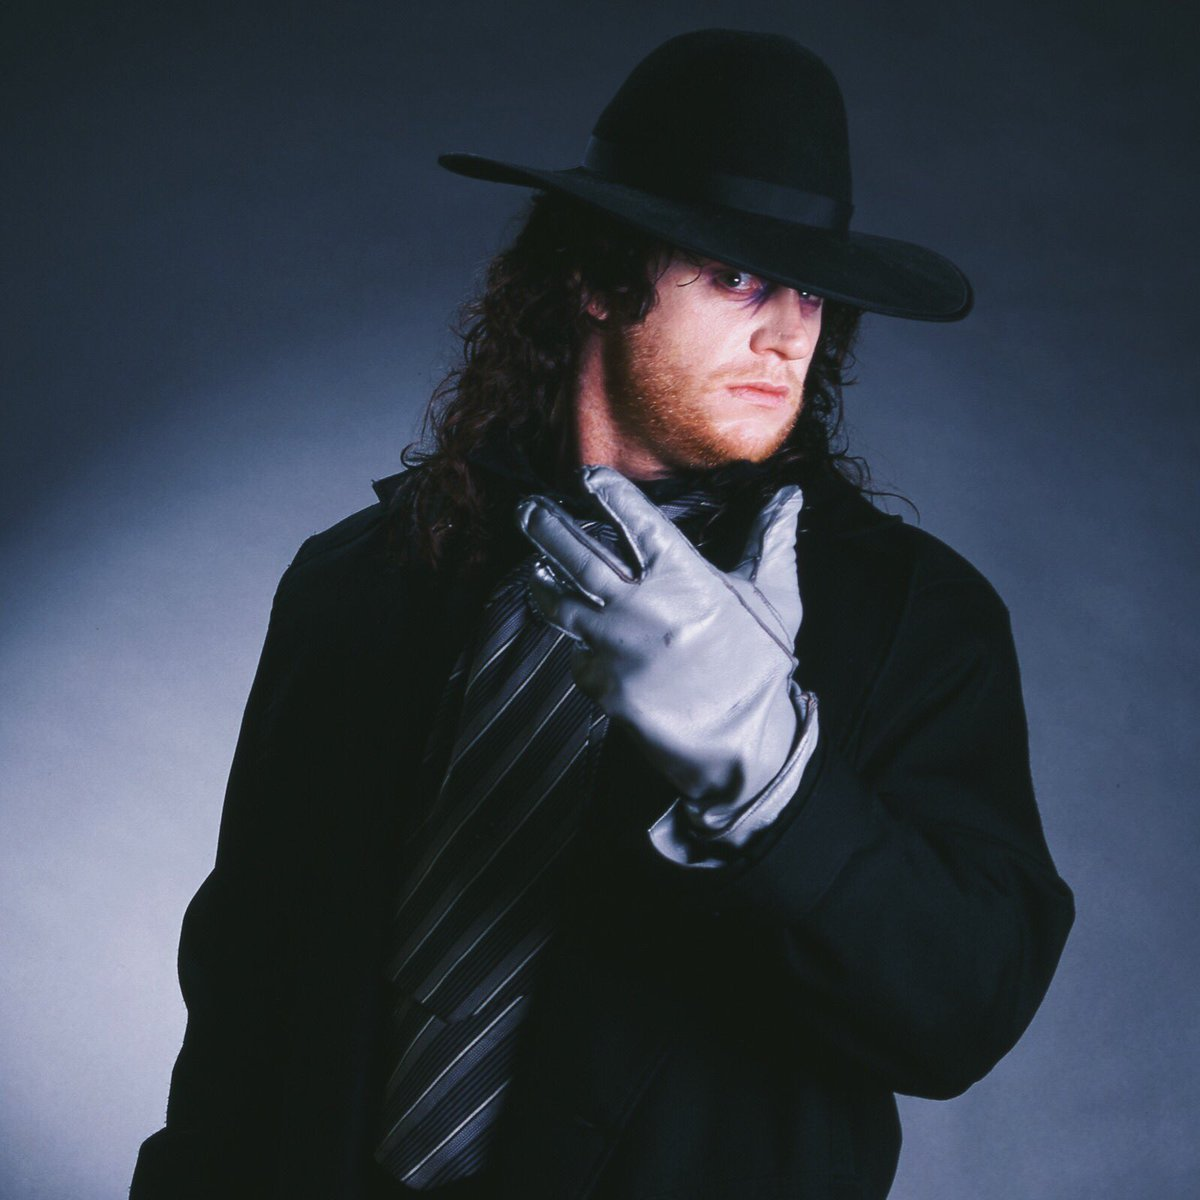 Undertaker has done it all throughout his 30-year WWE career   25-2 WrestleMania record  Most WrestleMania wins ever  2007 Royal Rumble winner  7x world champ  7x tag team champ  1x hardcore champ  Longest-tenured WWE wrestler  Stats still don't tell the whole story pic.twitter.com/ejTRNDCNBd  by Doppelganger Dan